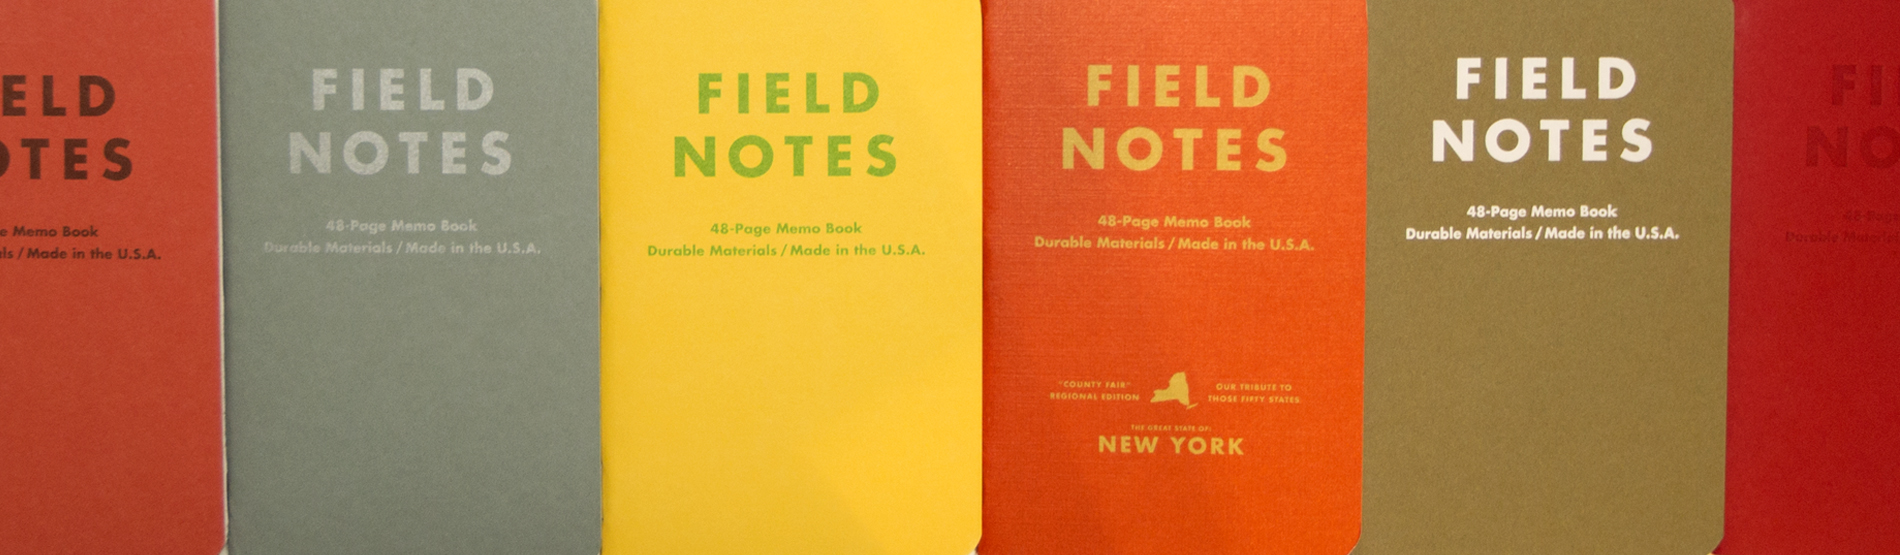 Field Notes Colors Banner